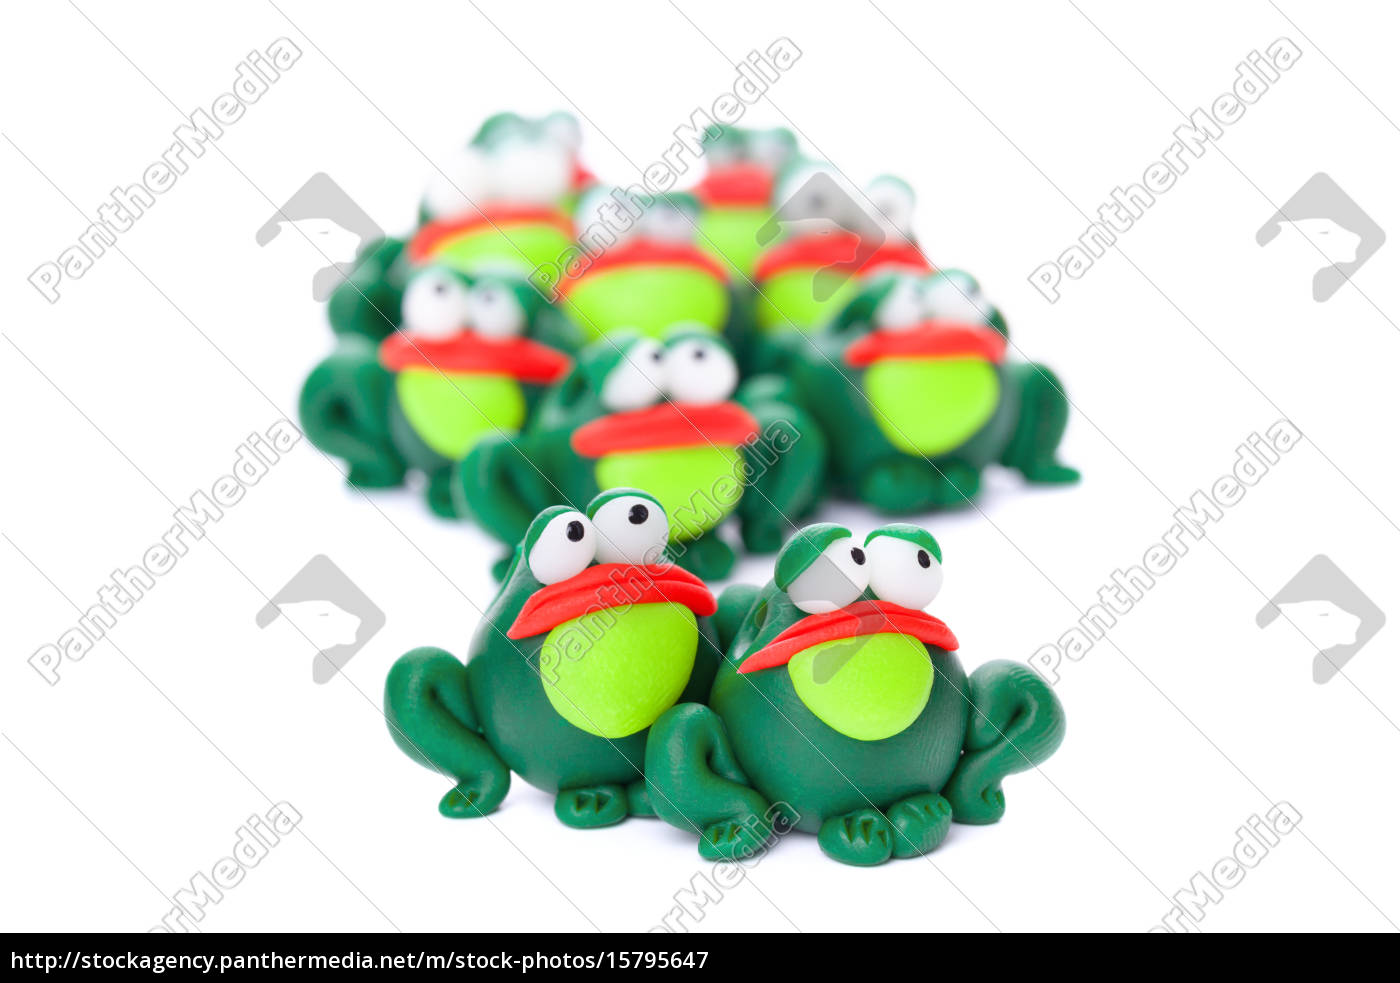 frogs - 15795647